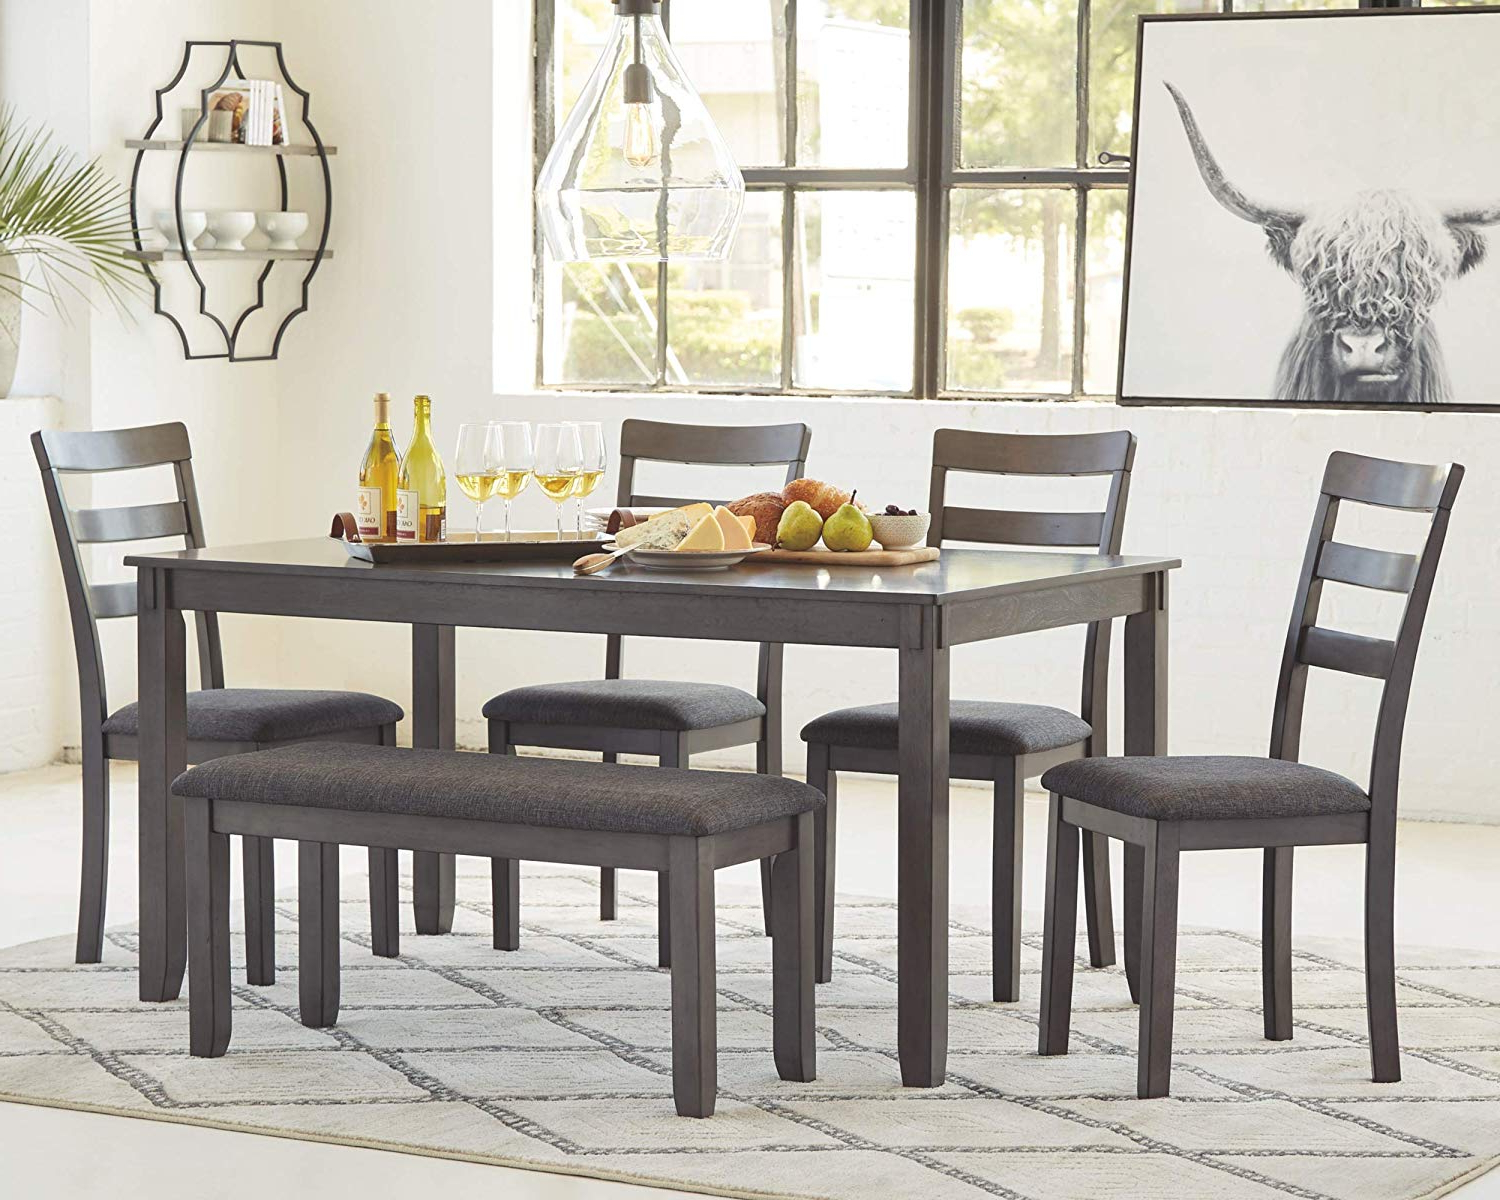 Signature Designashley Bridson Dining Table, Gray In Fashionable Charcoal Transitional 6 Seating Rectangular Dining Tables (View 2 of 25)